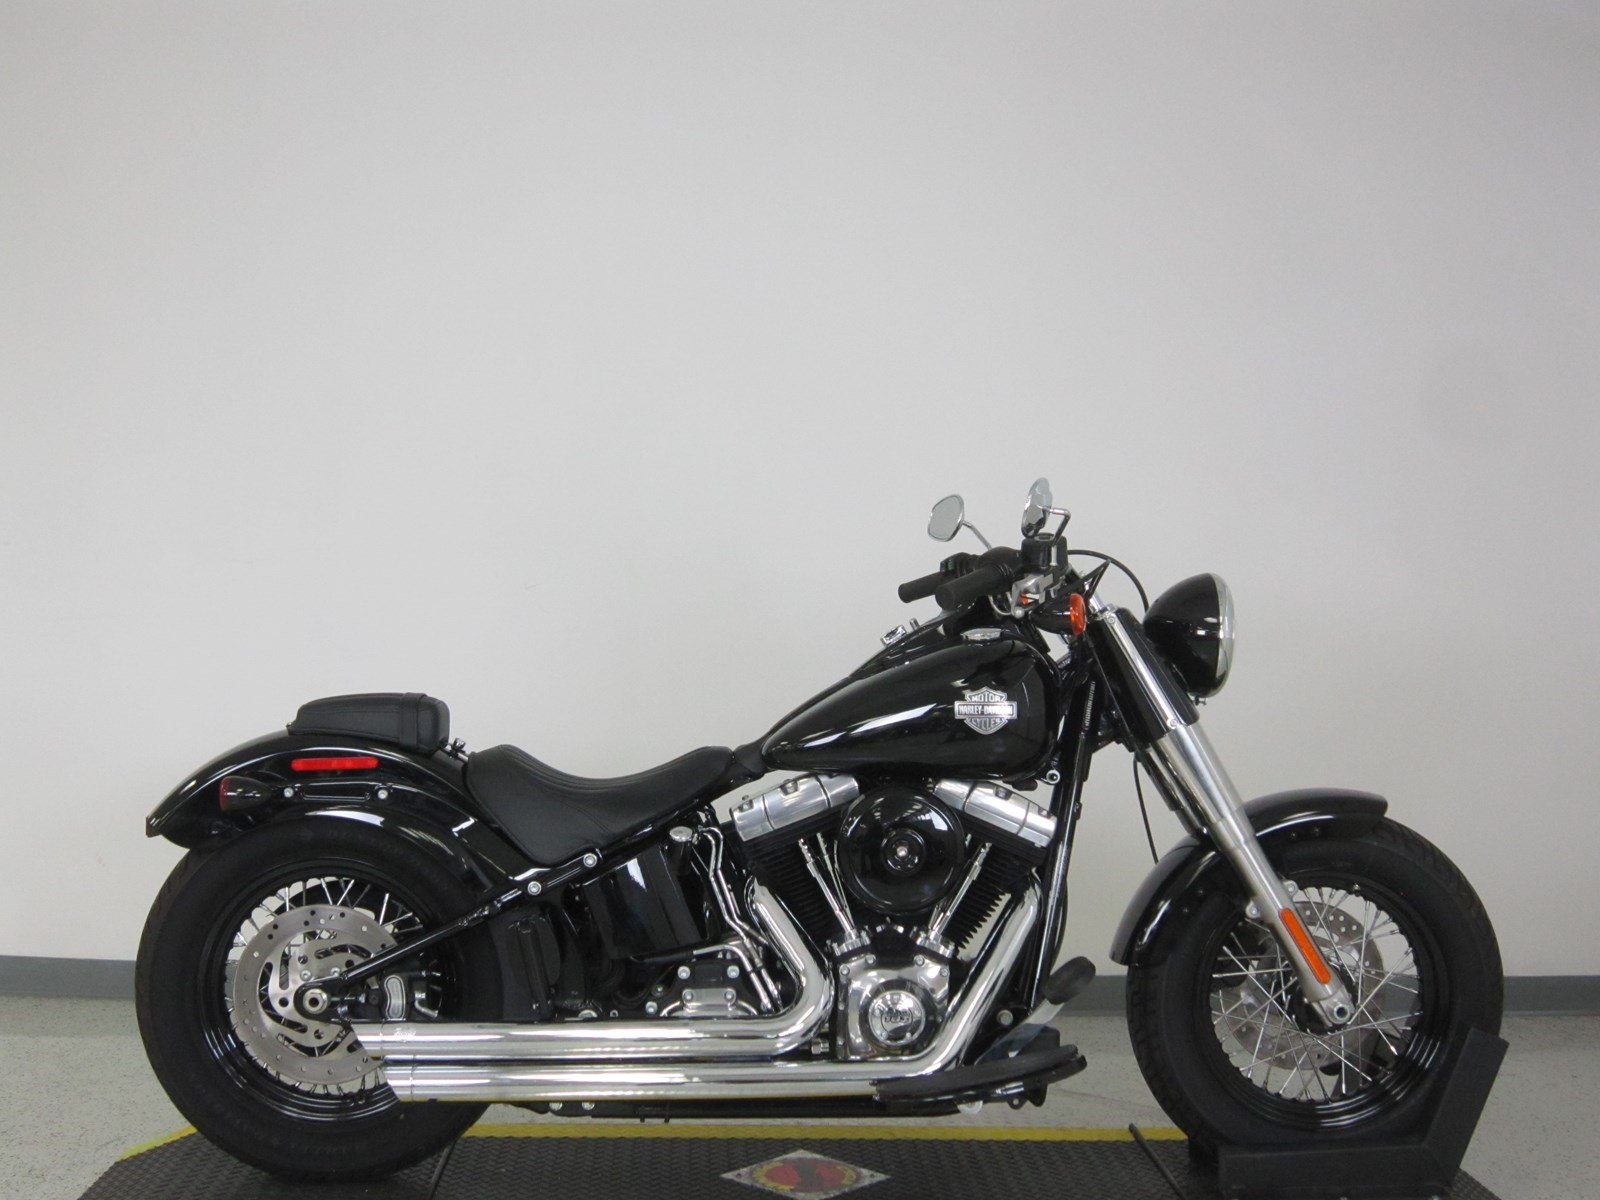 Harley Davidson Softail Value